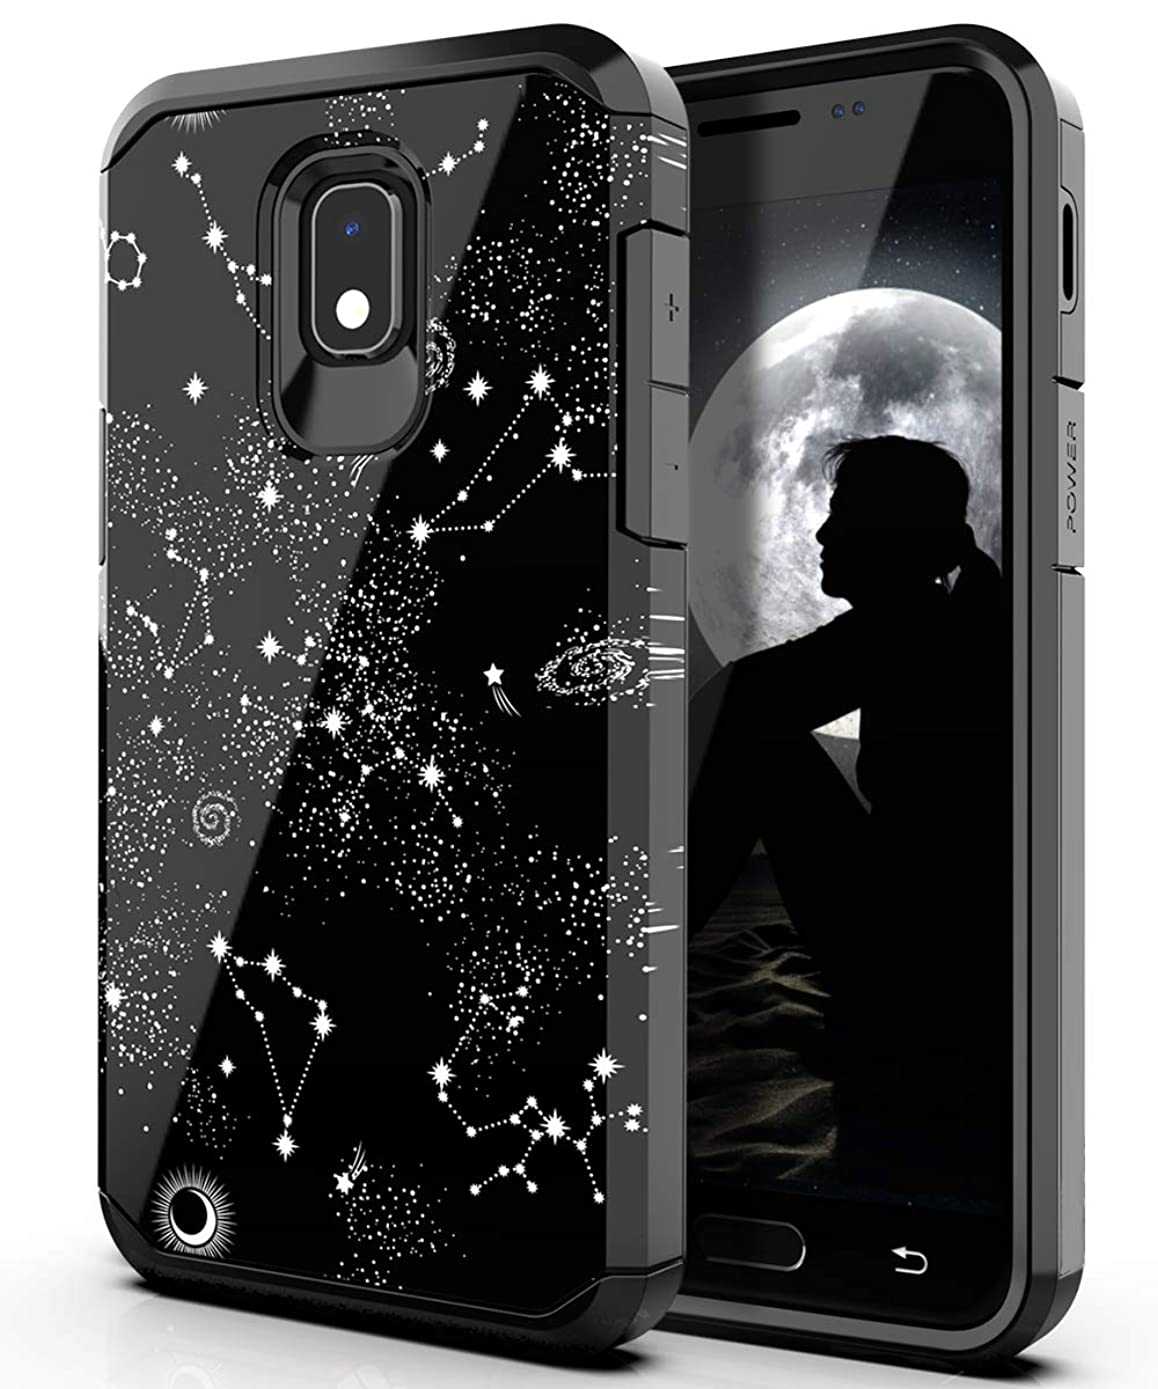 PBRO Galaxy J3 Orbit Case,Cute Universe Constellation Dual Layer Soft Silicone & Hard Back Cover Case for Samsung Galaxy J3 2018/J3 Achieve/Amp Prime 3/J3V/Express Prime 3/J3 Star/Sol 3/J3 Aura-Black